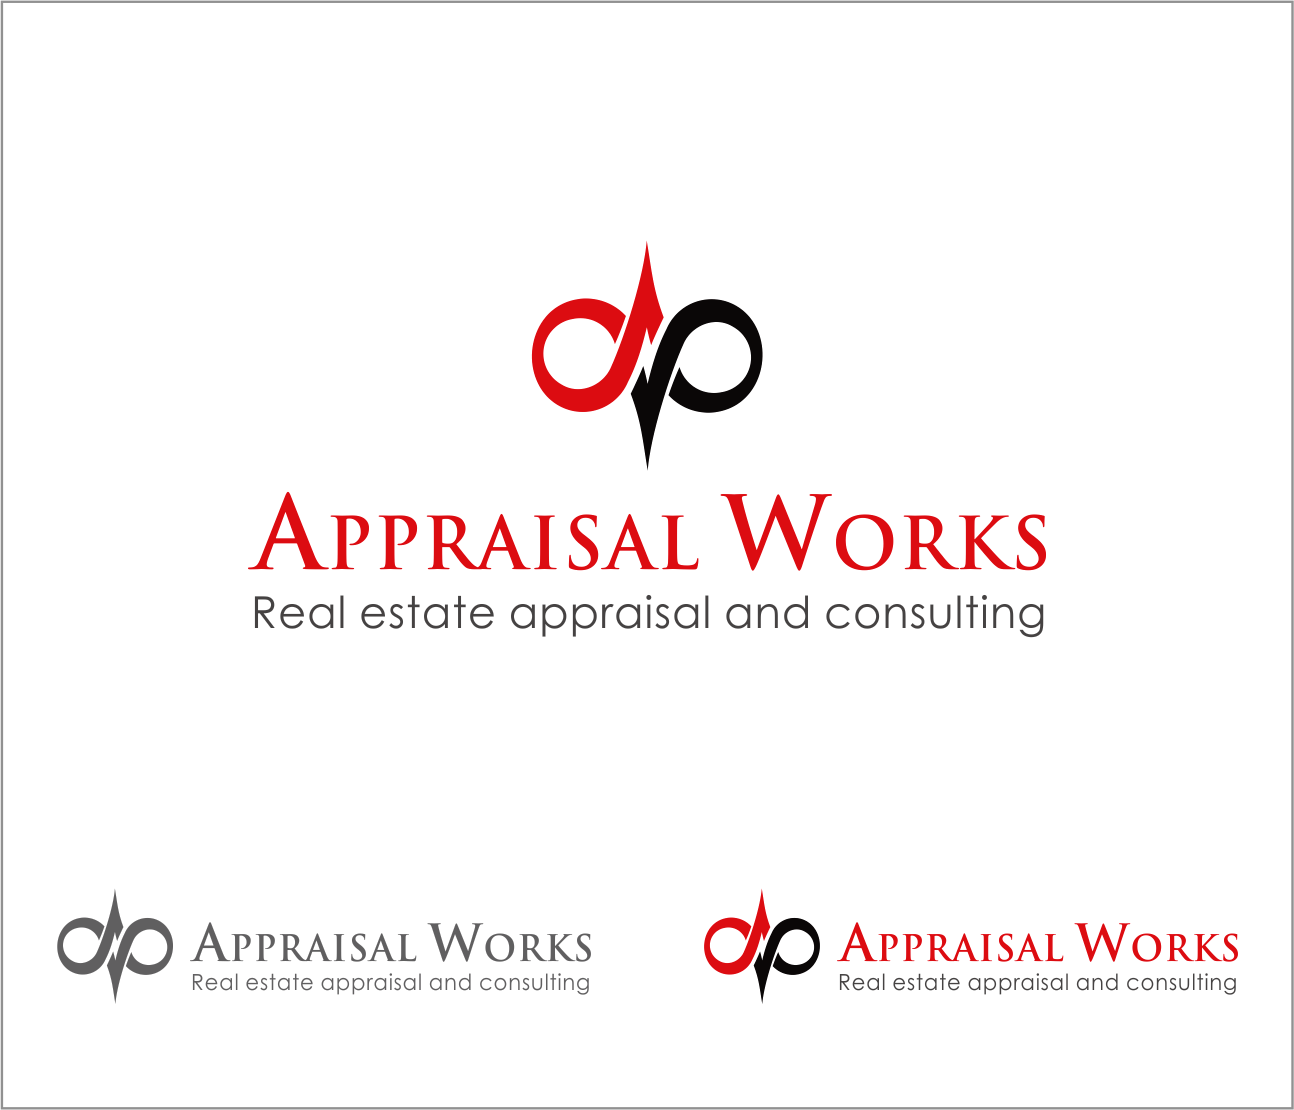 Logo Design by Armada Jamaluddin - Entry No. 152 in the Logo Design Contest Appraisal Works Logo Design.